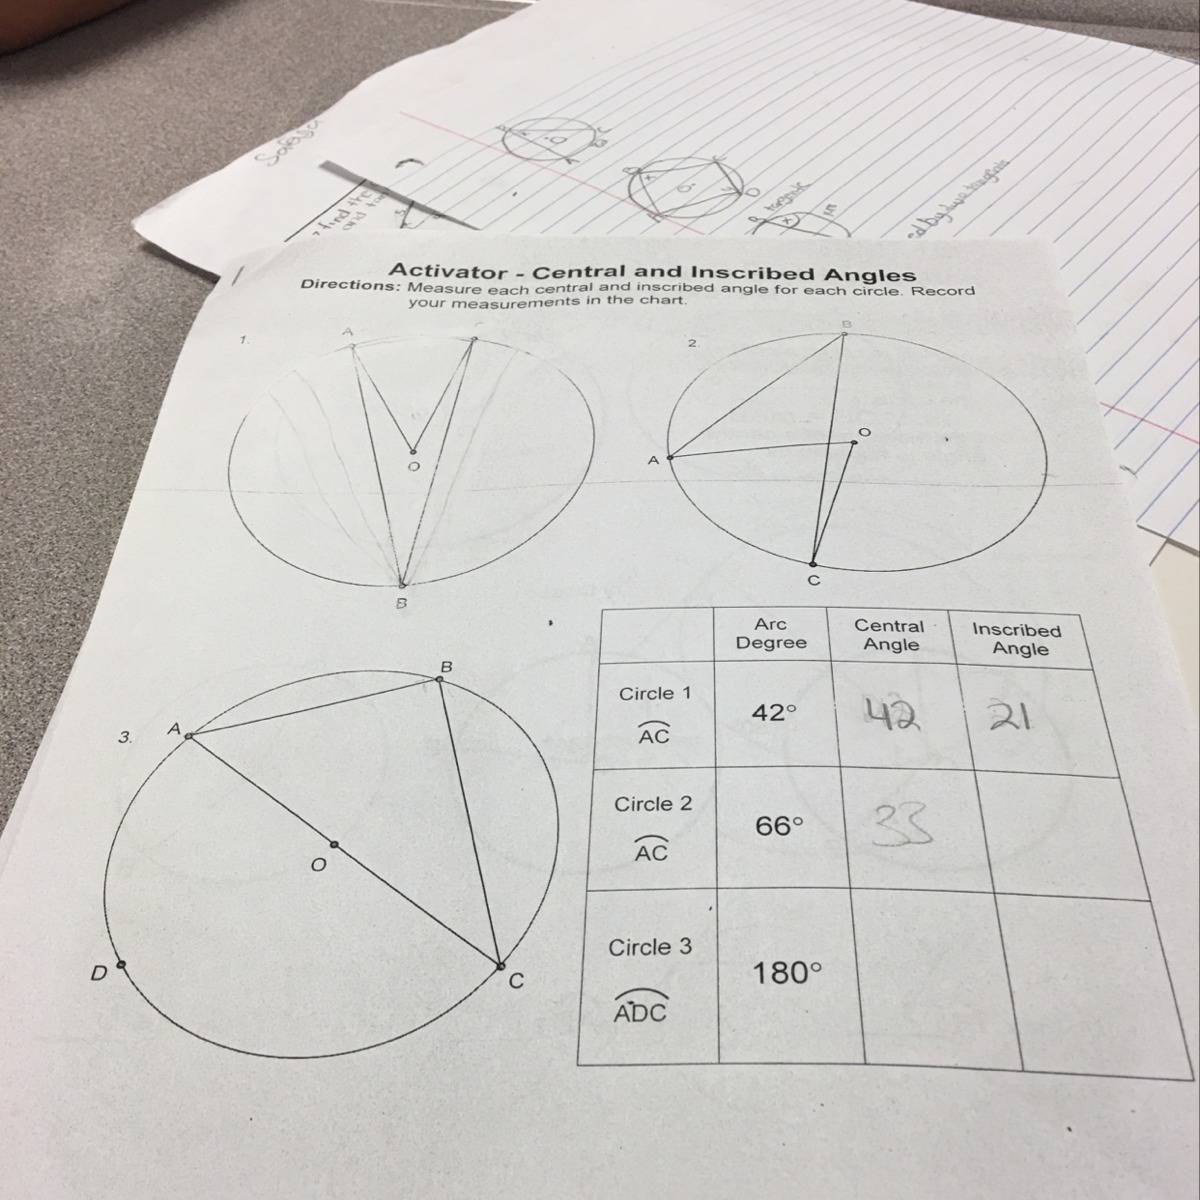 Inscribed Angles Worksheet Answer Key